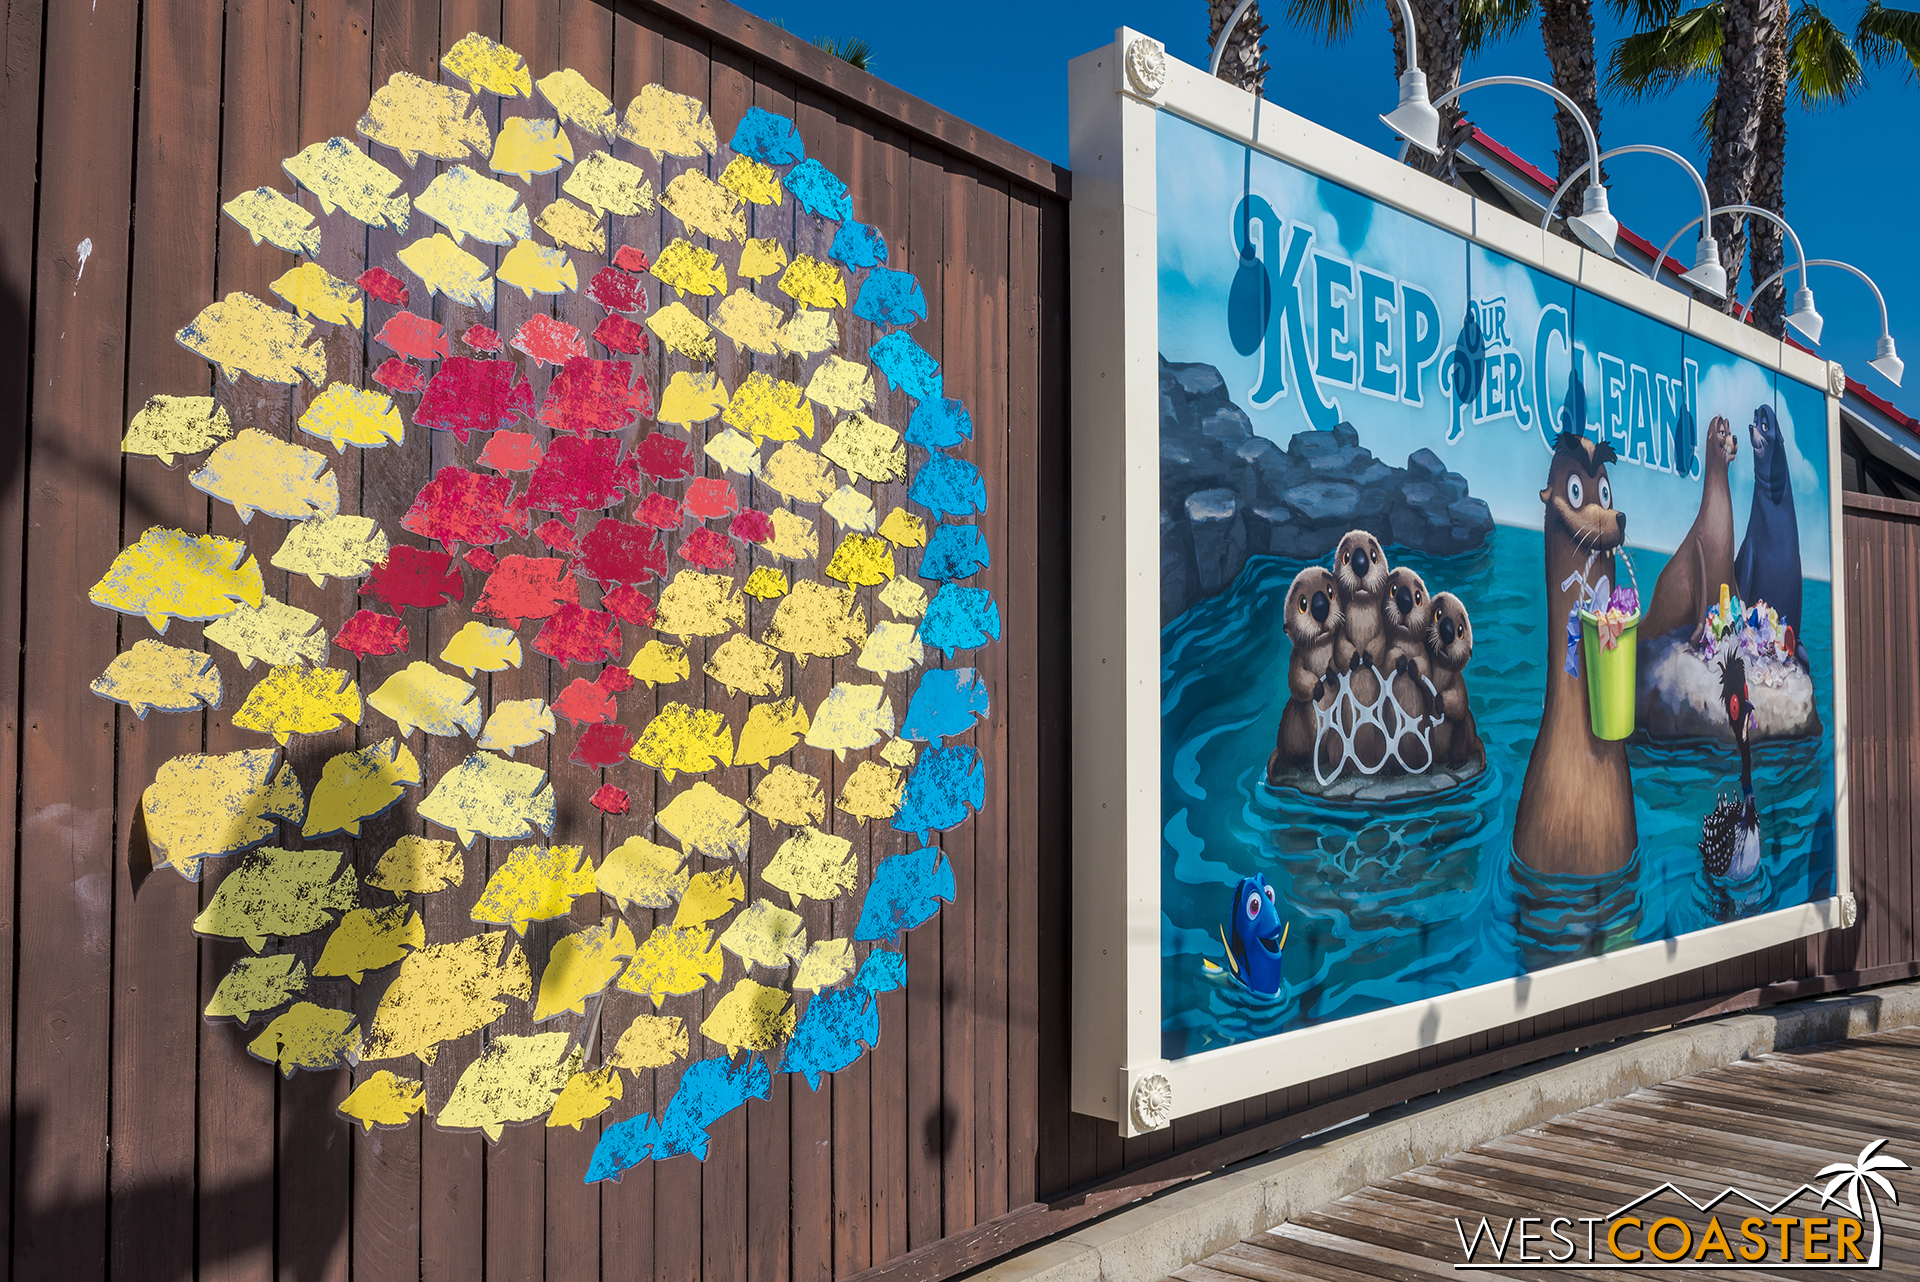 This was added to the wall by the Pixar Pier turnaround over the Incredicoaster launch.  It looks temporary, but cute.